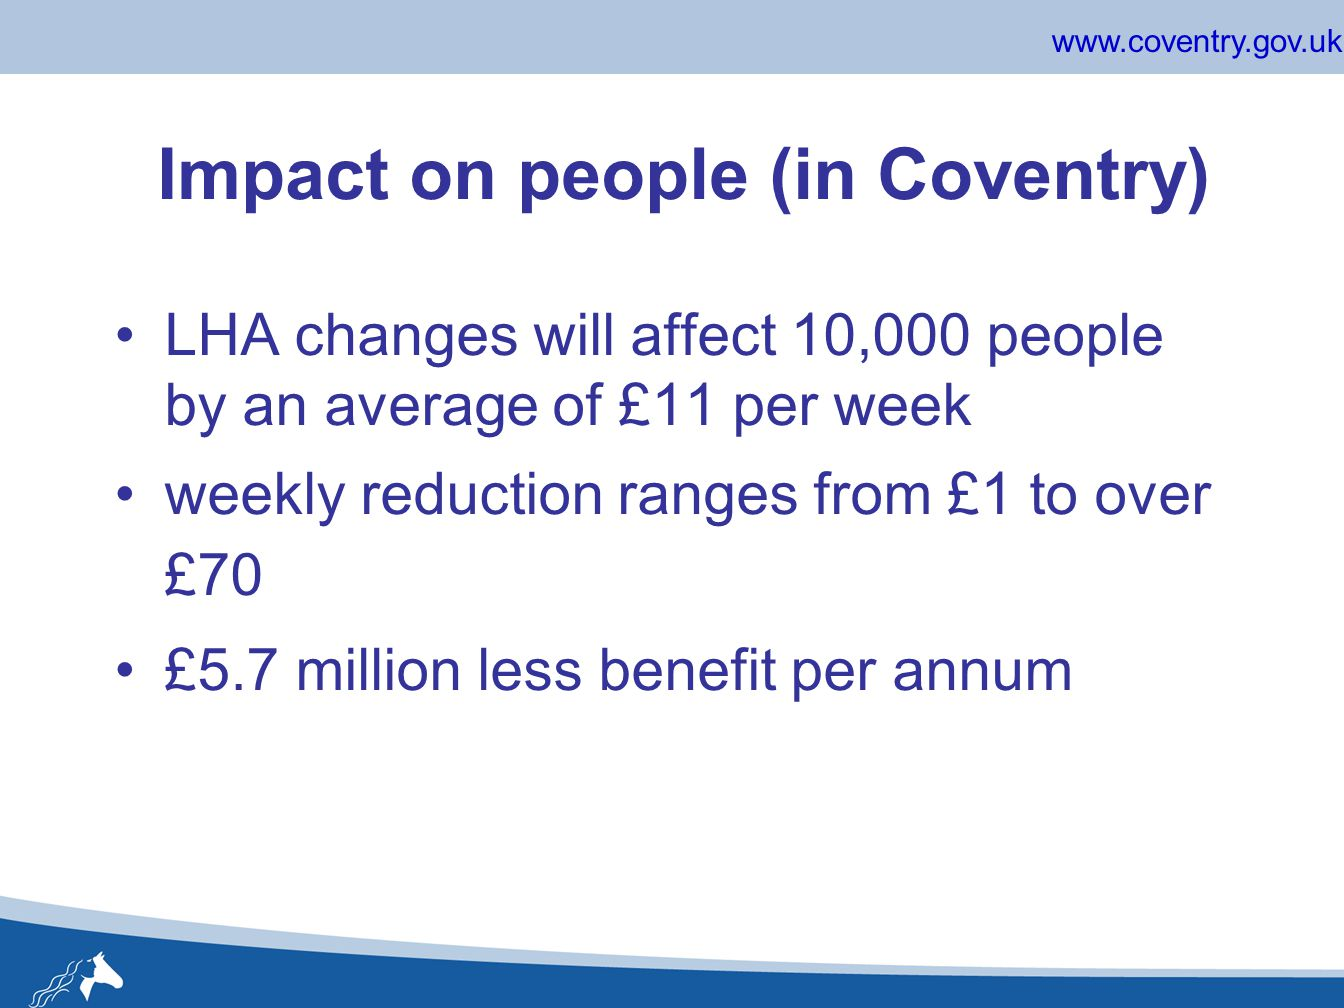 www.coventry.gov.uk Impact on people (in Coventry) LHA changes will affect 10,000 people by an average of £11 per week weekly reduction ranges from £1 to over £70 £5.7 million less benefit per annum